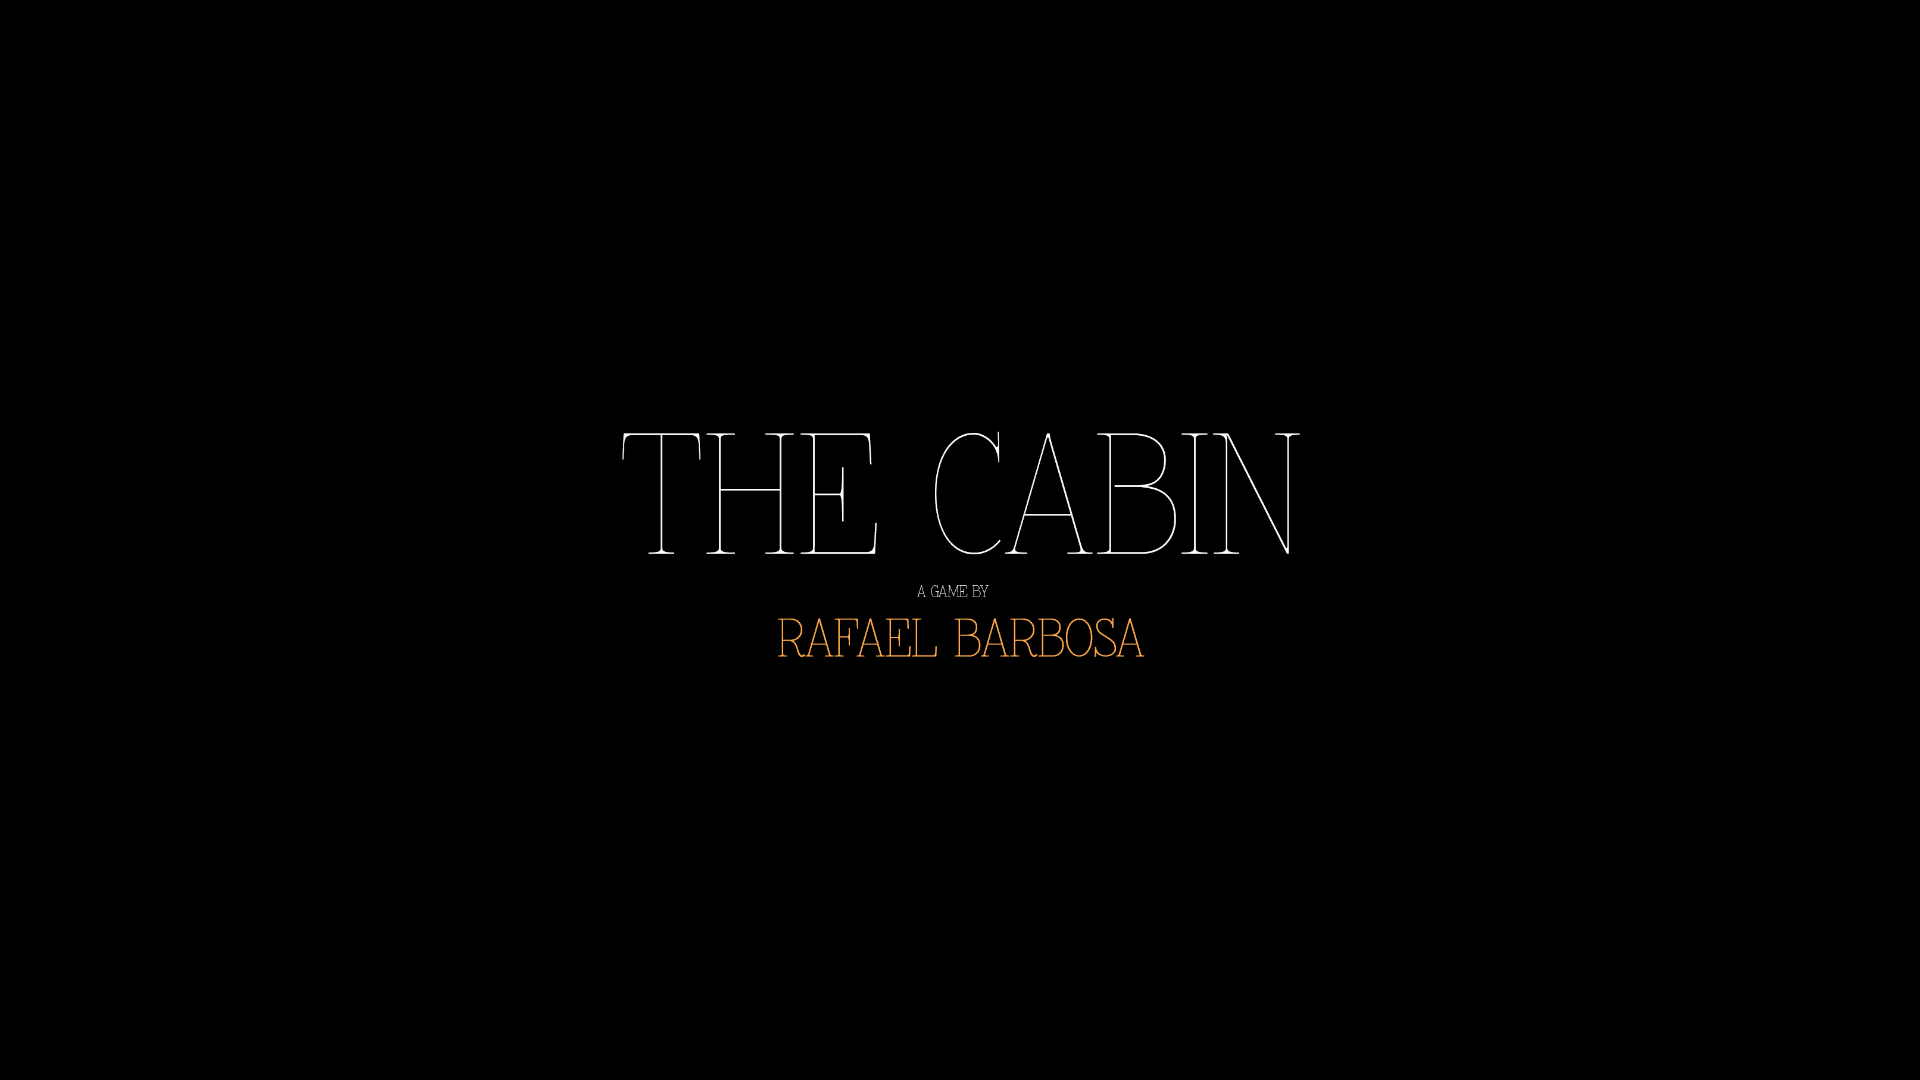 THE CABIN - Prologue